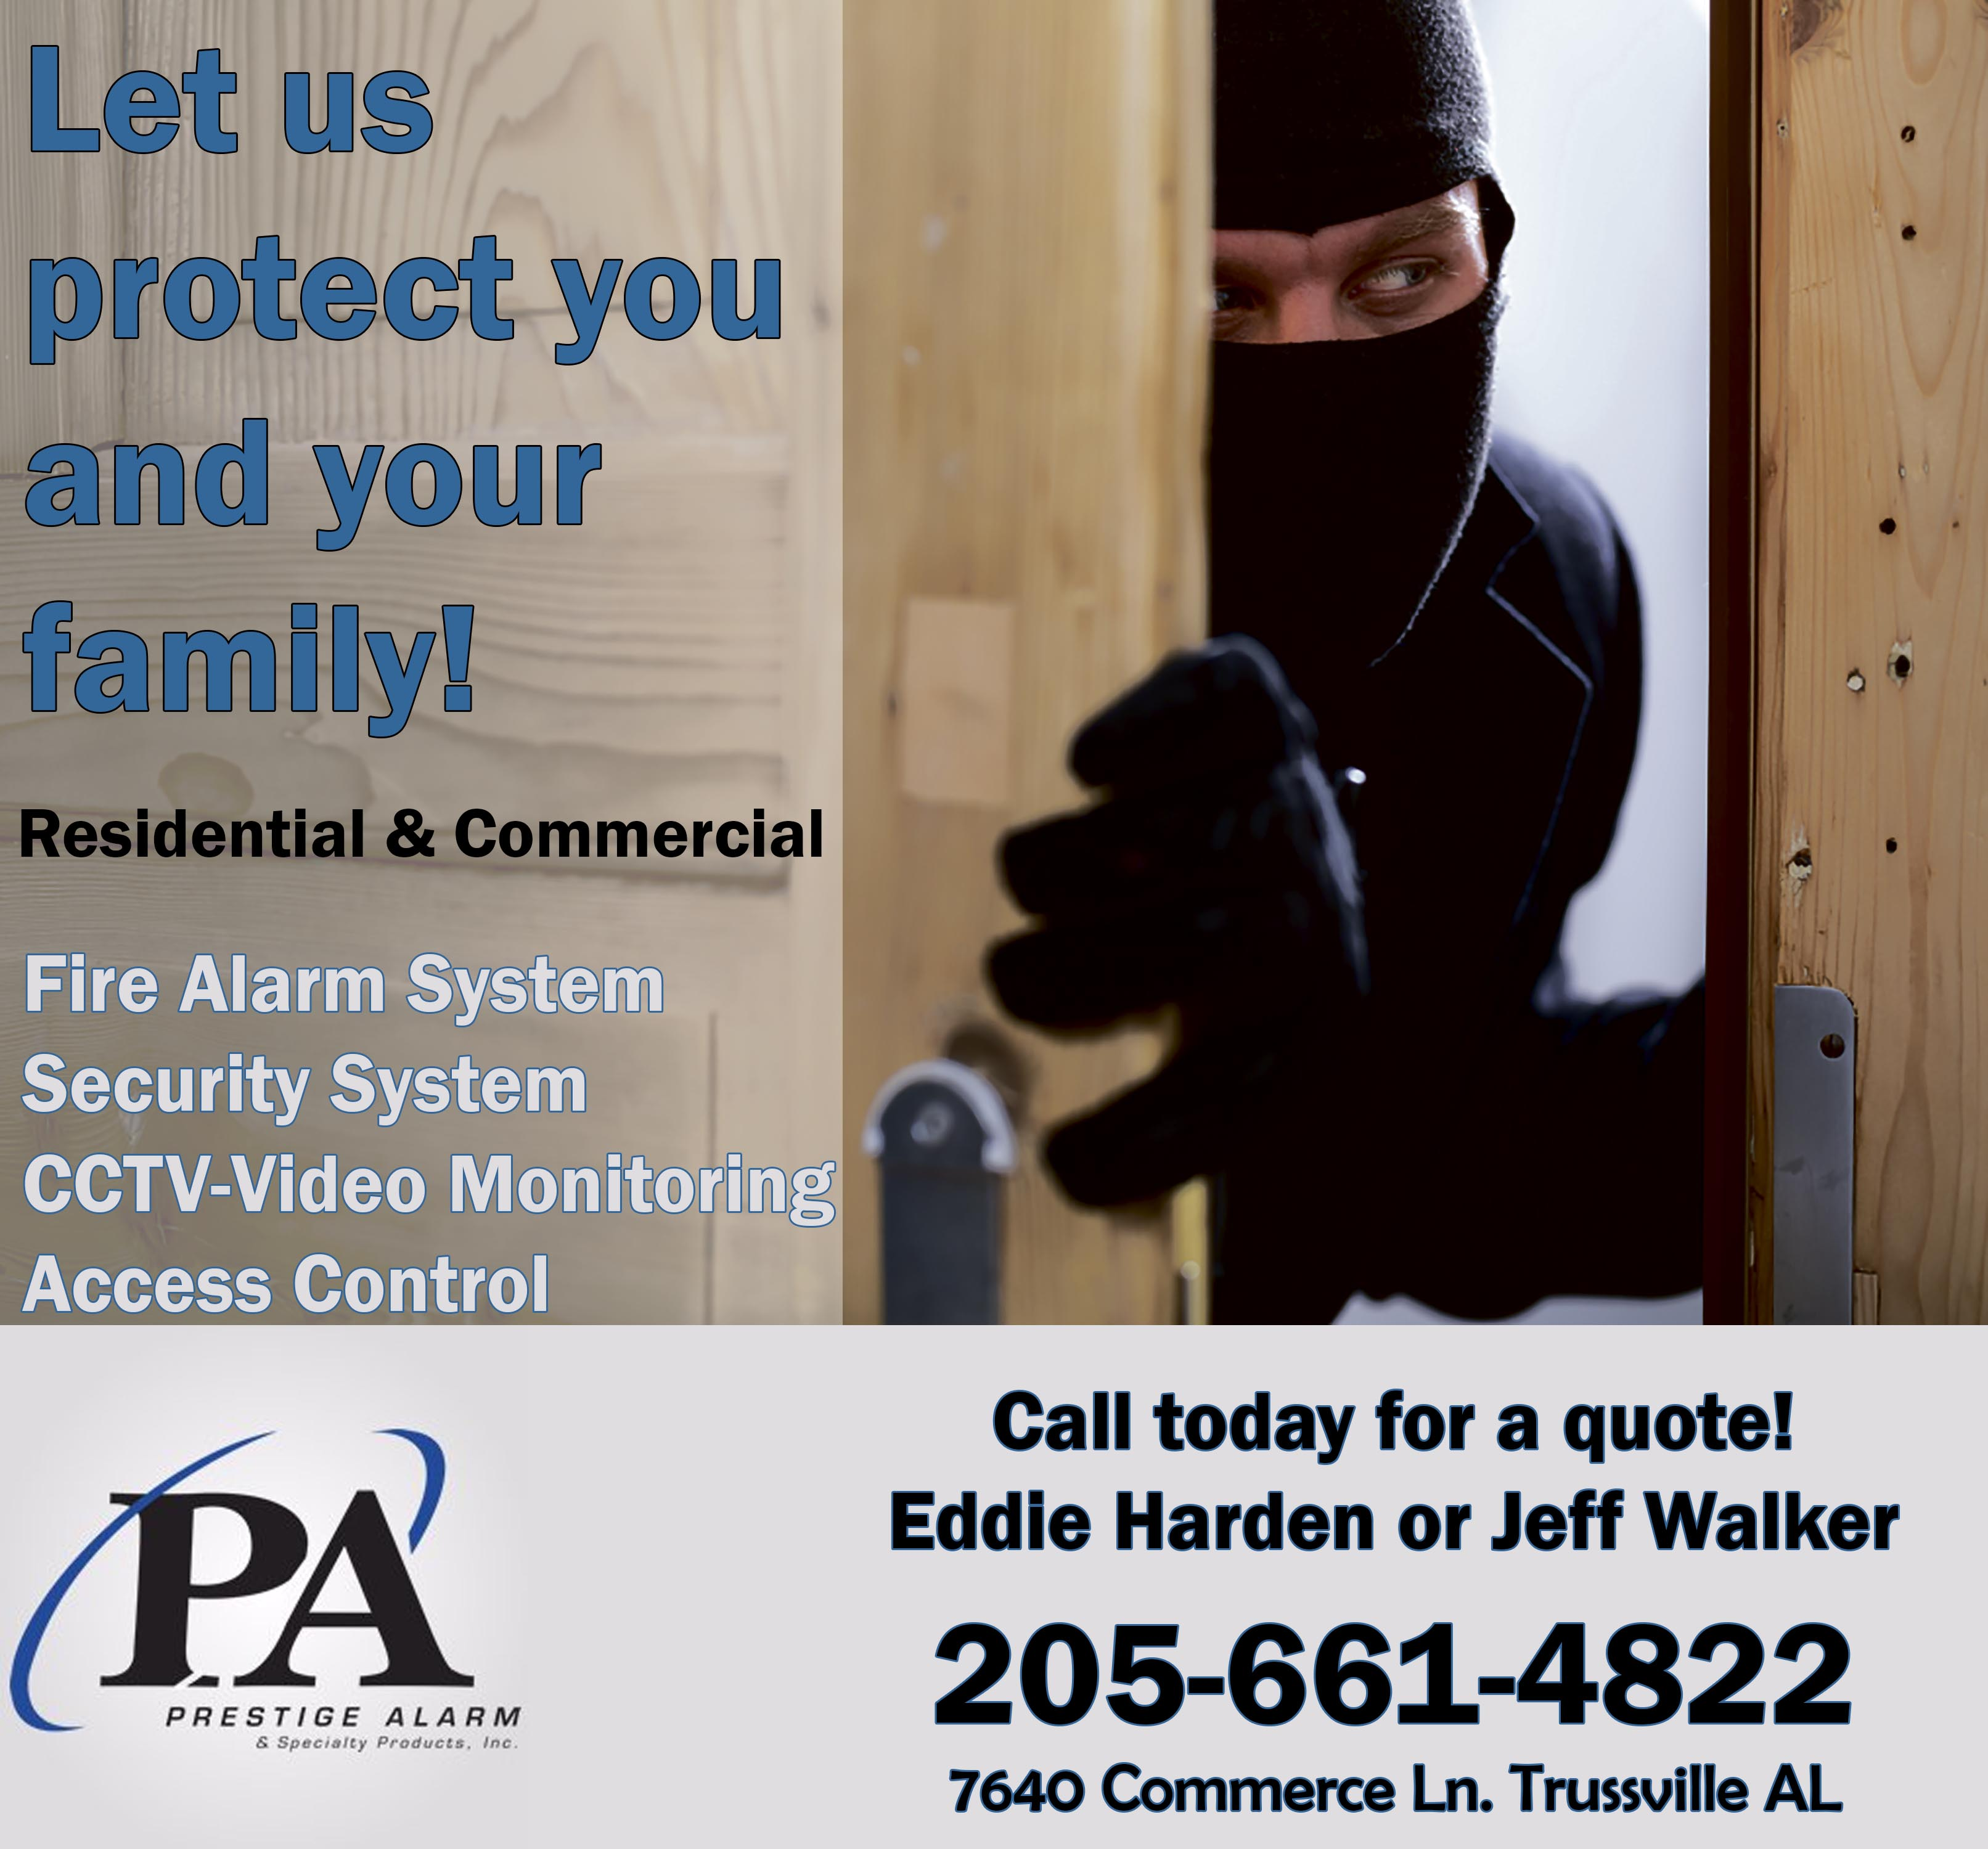 Prestige Alarm protects homes and businesses with unique technology and helping hearts